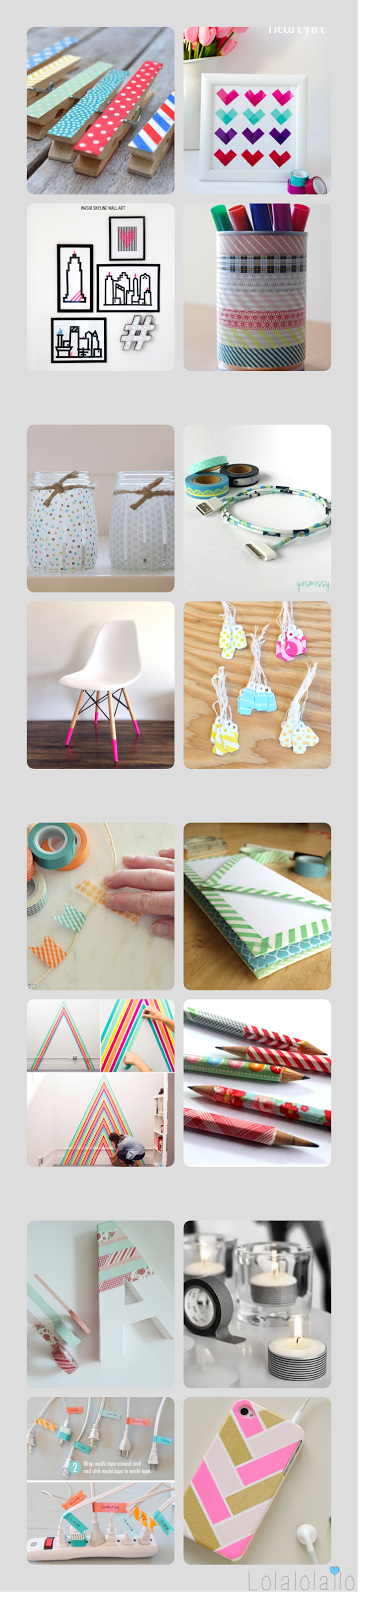 ideas_diy_washi_tape_decoracion_manualidades_lolalolailo_01